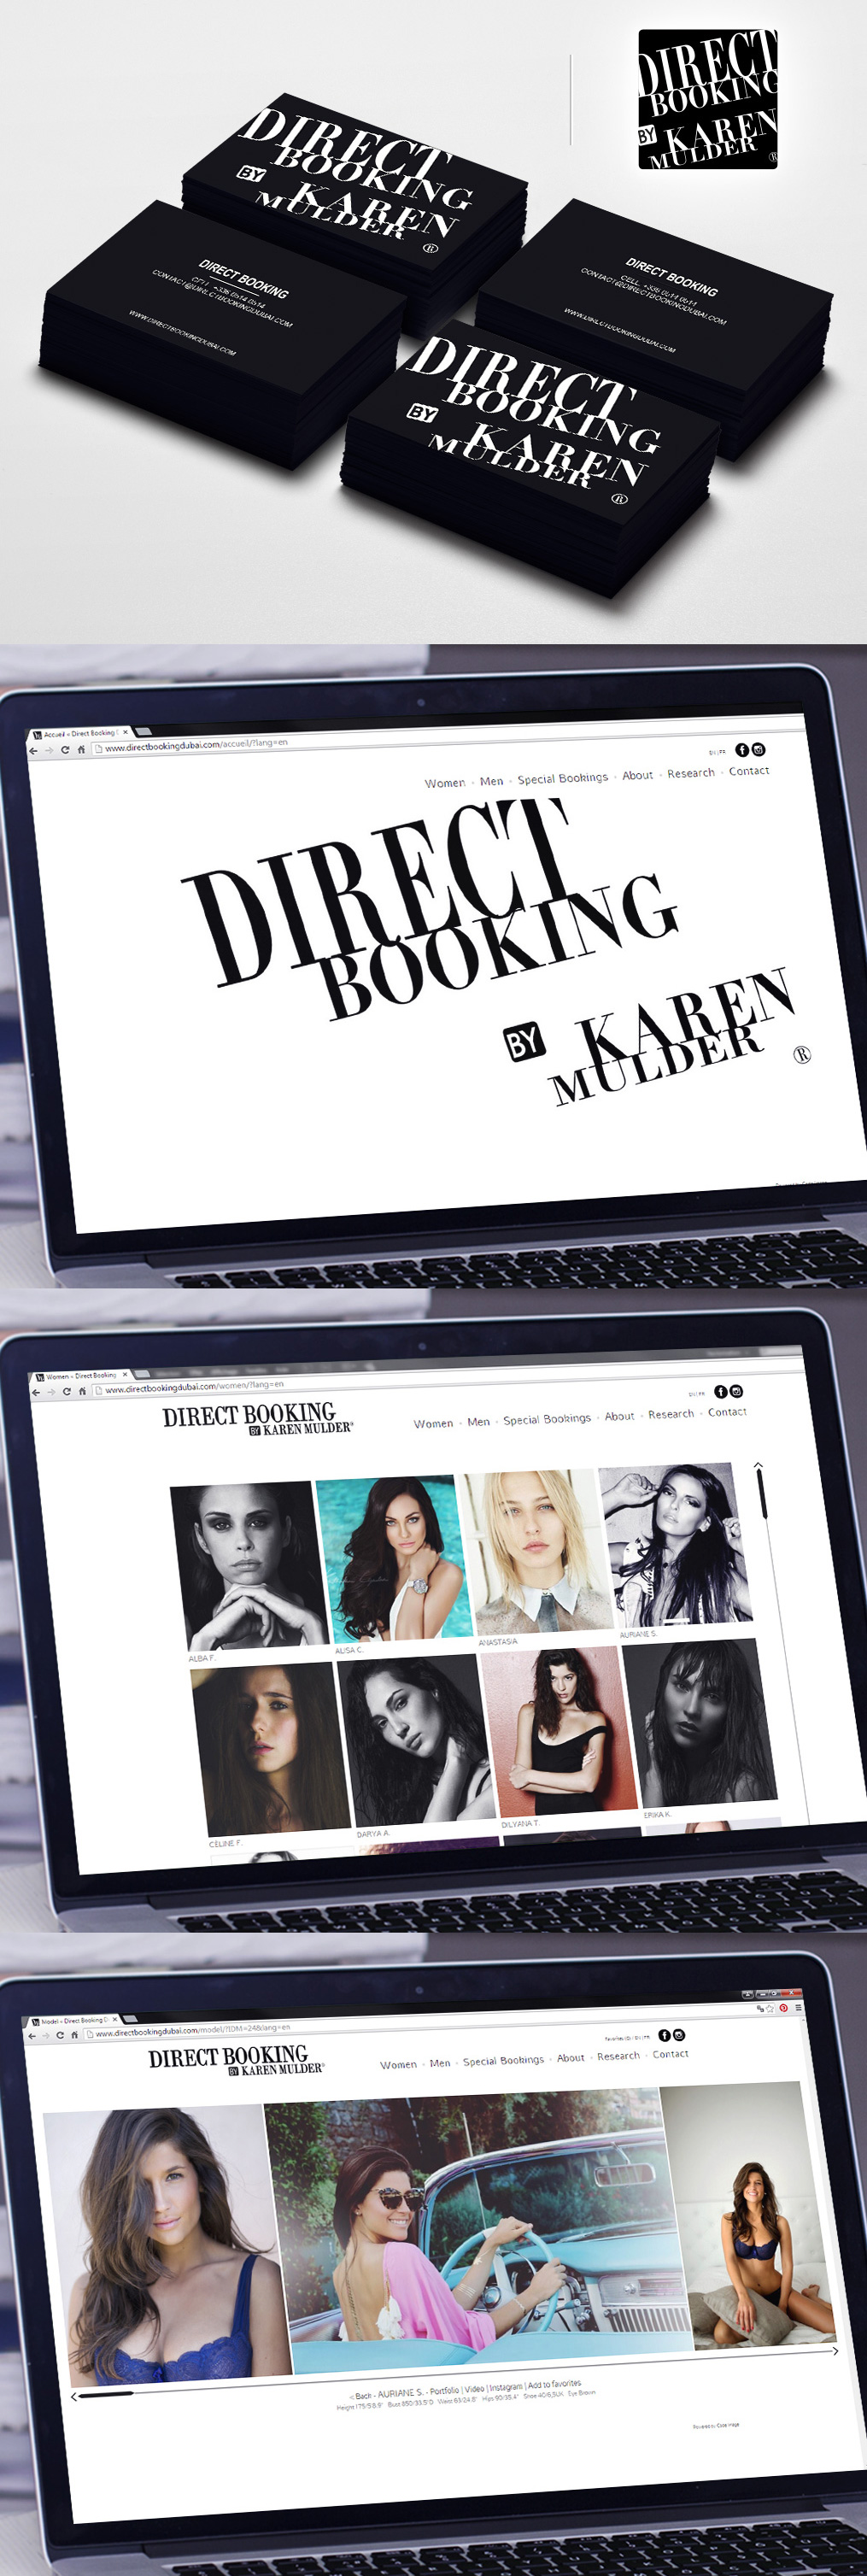 Page_direct_booking_final